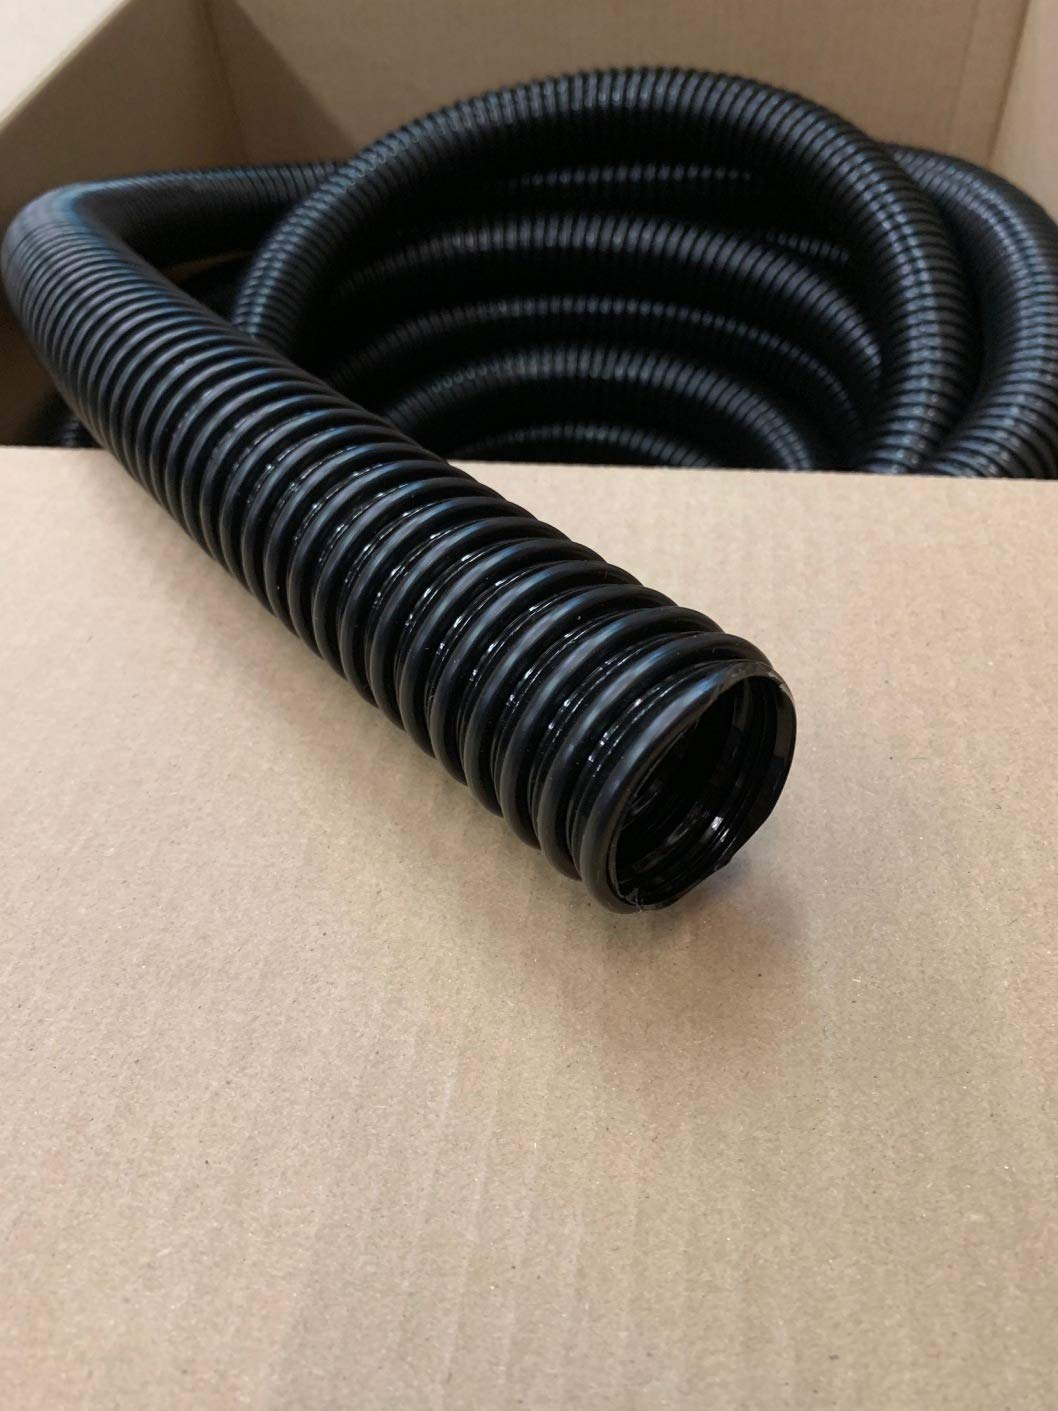 Campers 3 Foot Trailers A.A Black Plastic Flex Battery Vent Hose Tubing 1-3//4 ID RVs